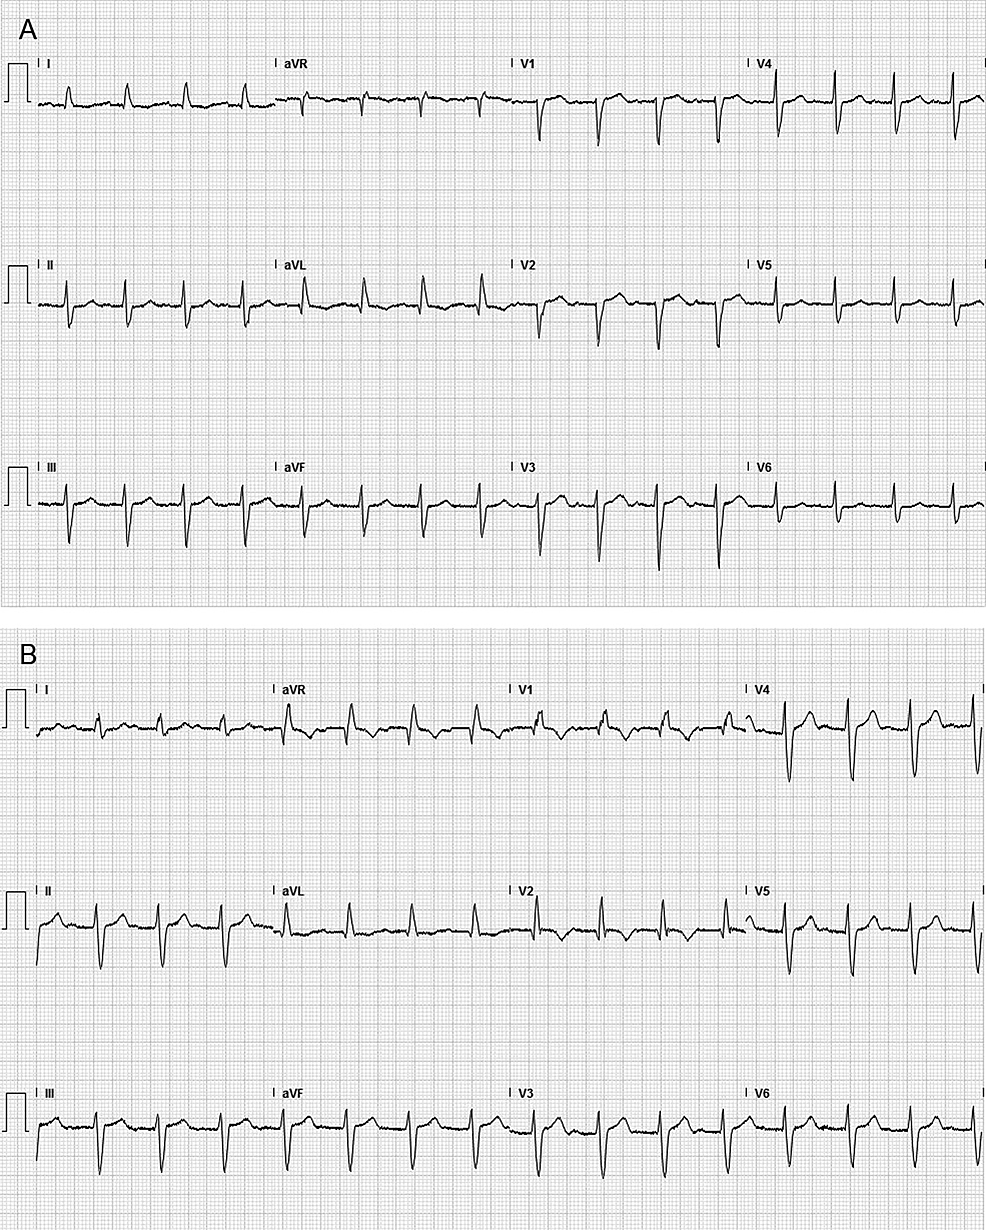 A:-Electrocardiogram-before-treatment-with-atezolizumab-showed-only-first-degree-atrioventricular-block.-B:-New-right-bundle-branch-block-and-left-anterior-fascicular-block-were-seen-after-atezolizumab-treatment